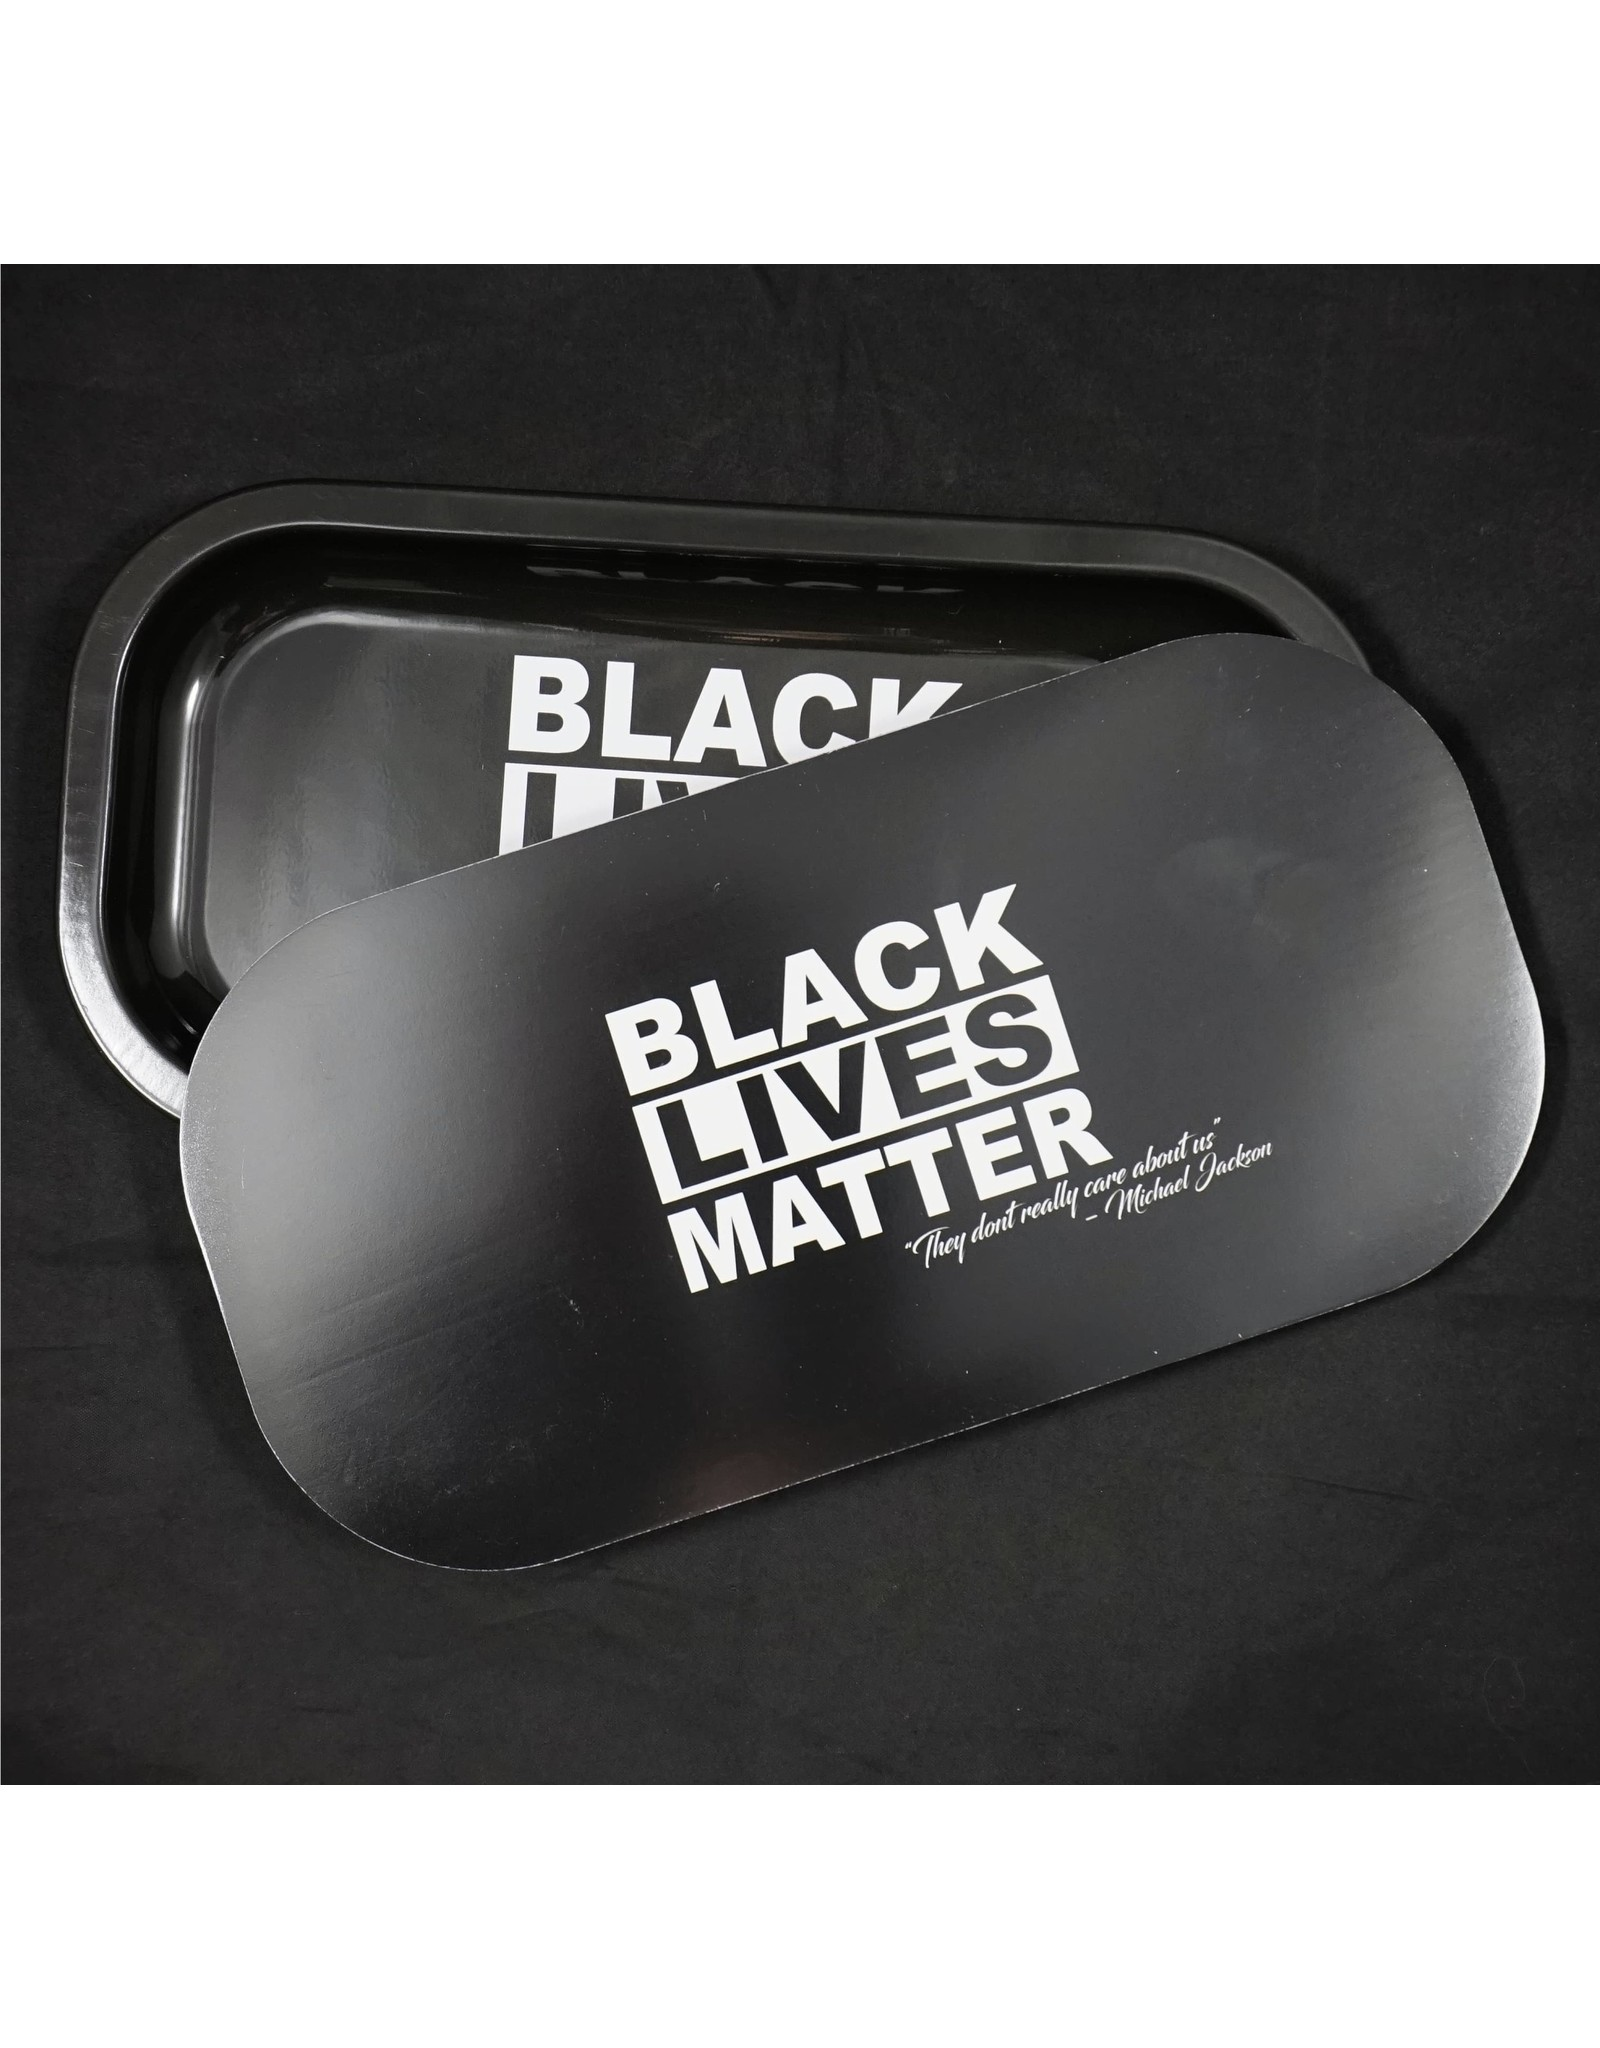 Black Lives Matter Small Metal Tray w/Magnetic Lid